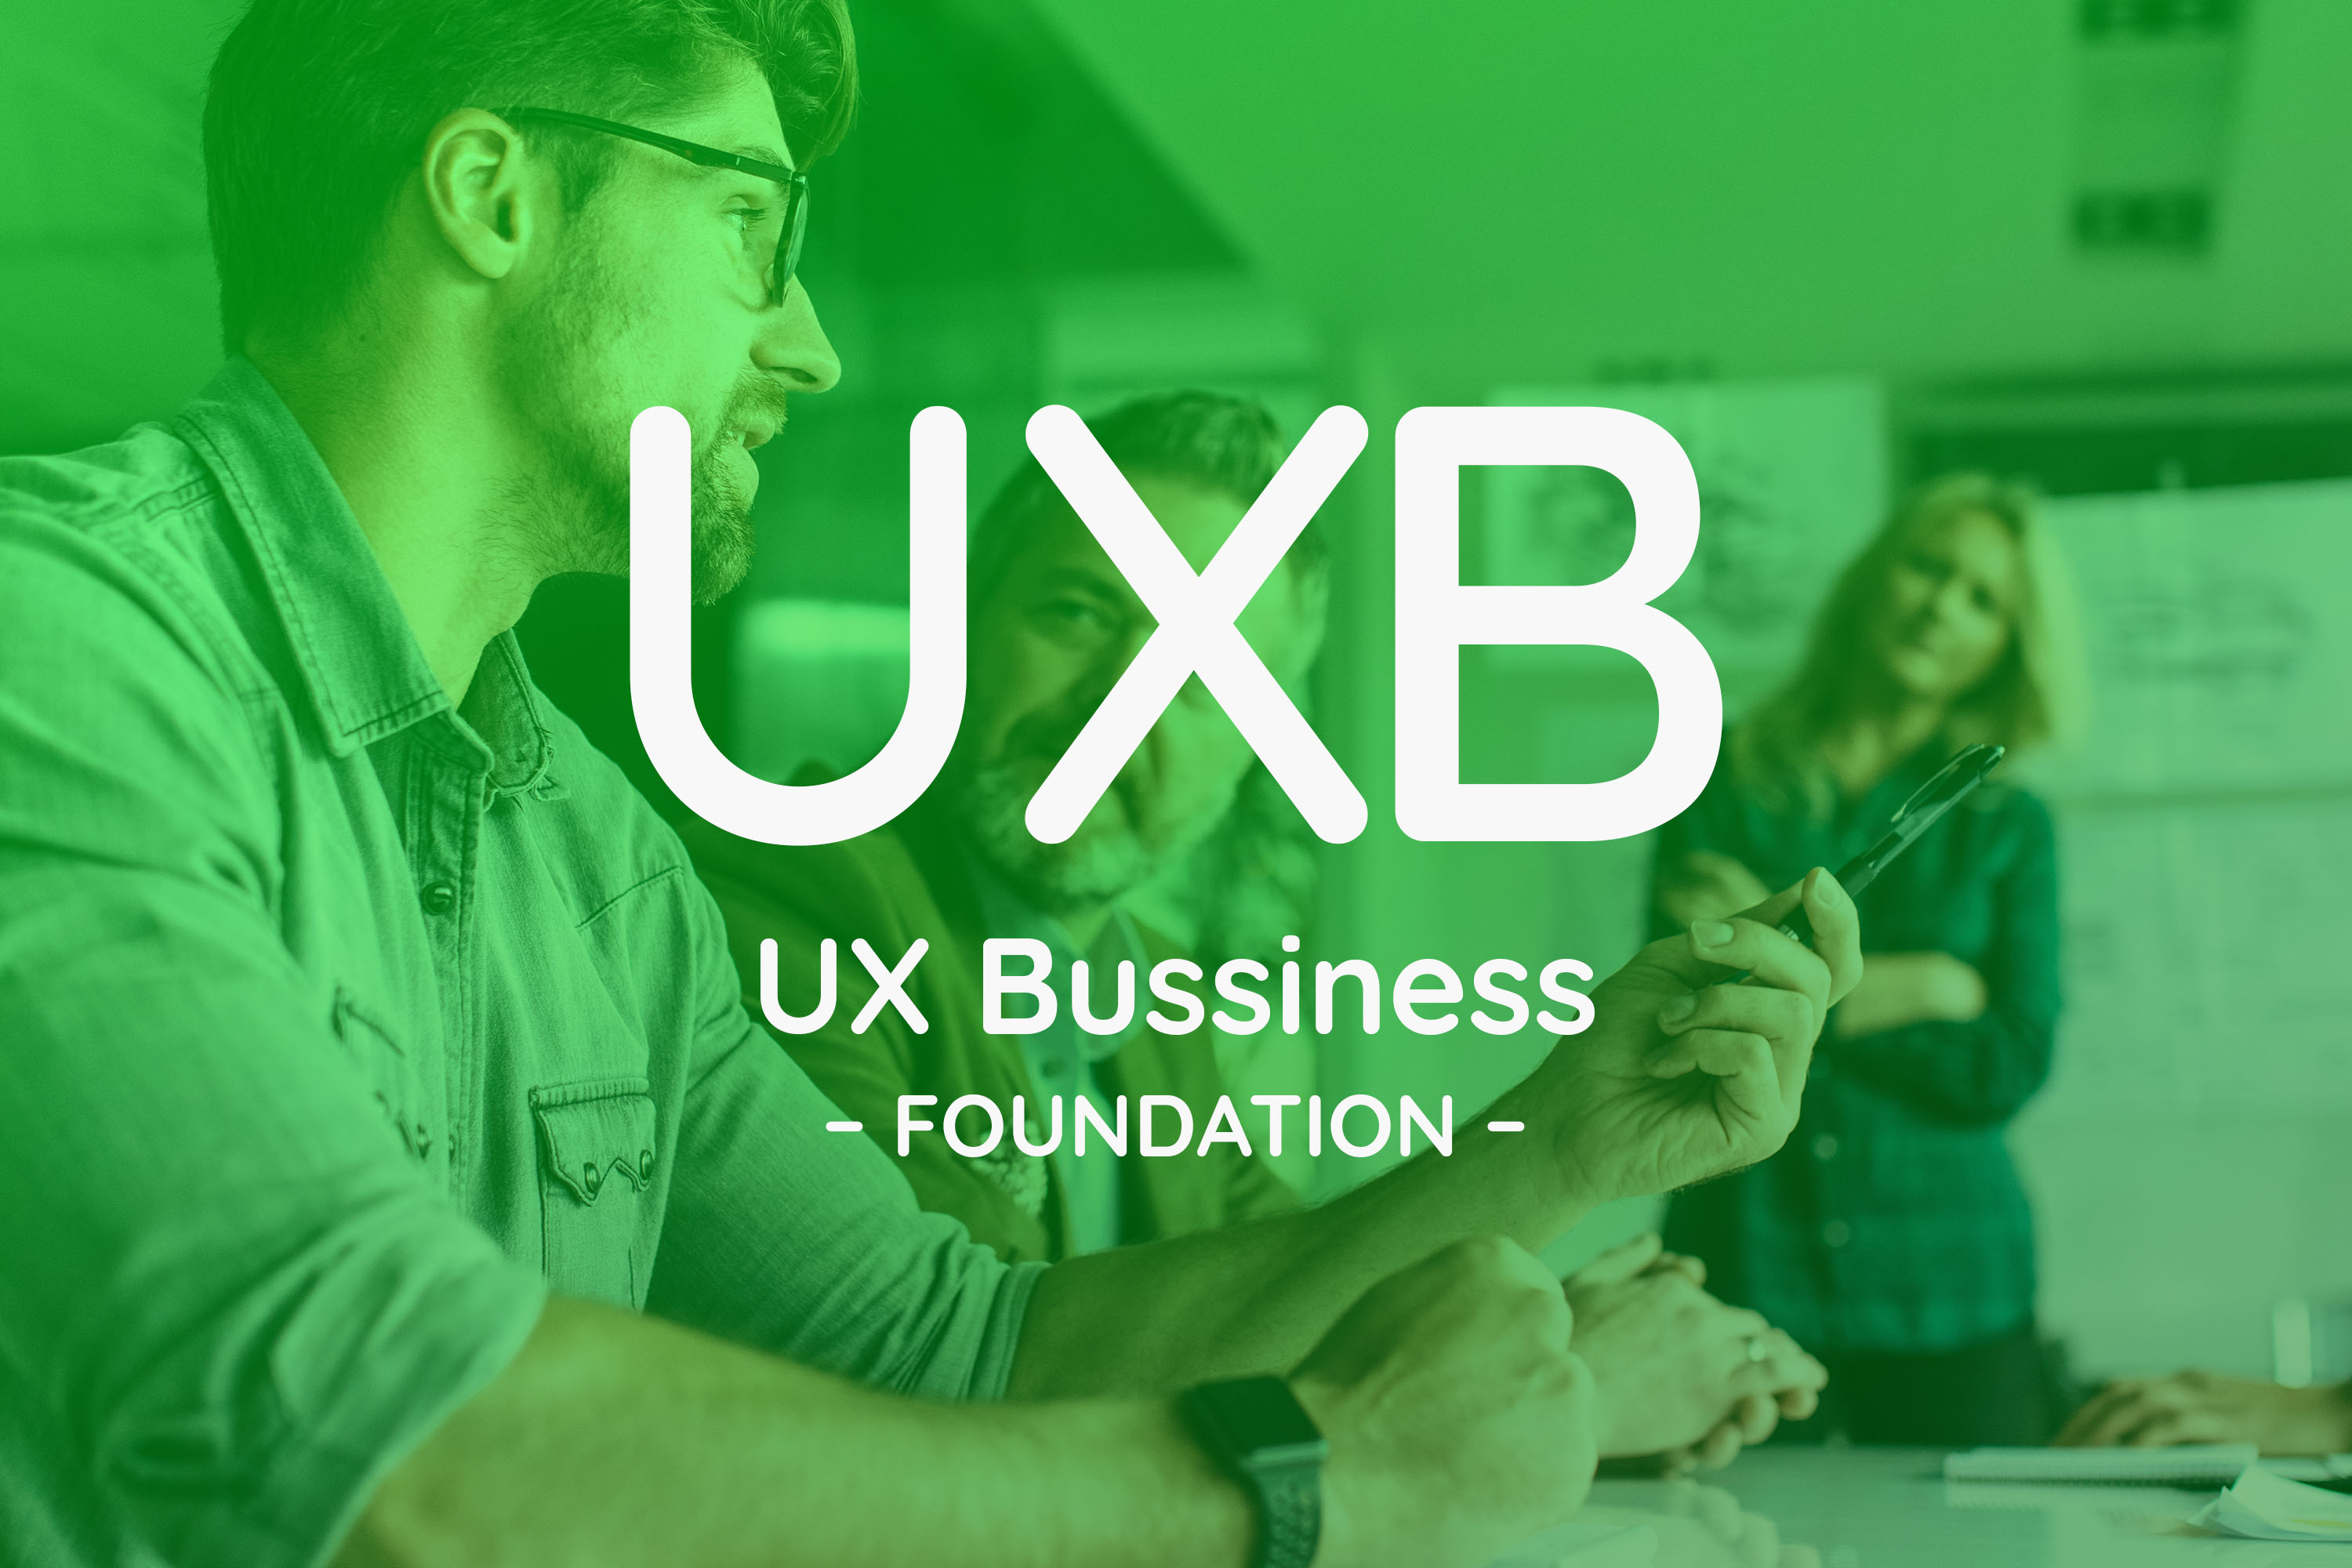 UX BUSINESS FOUNDATION